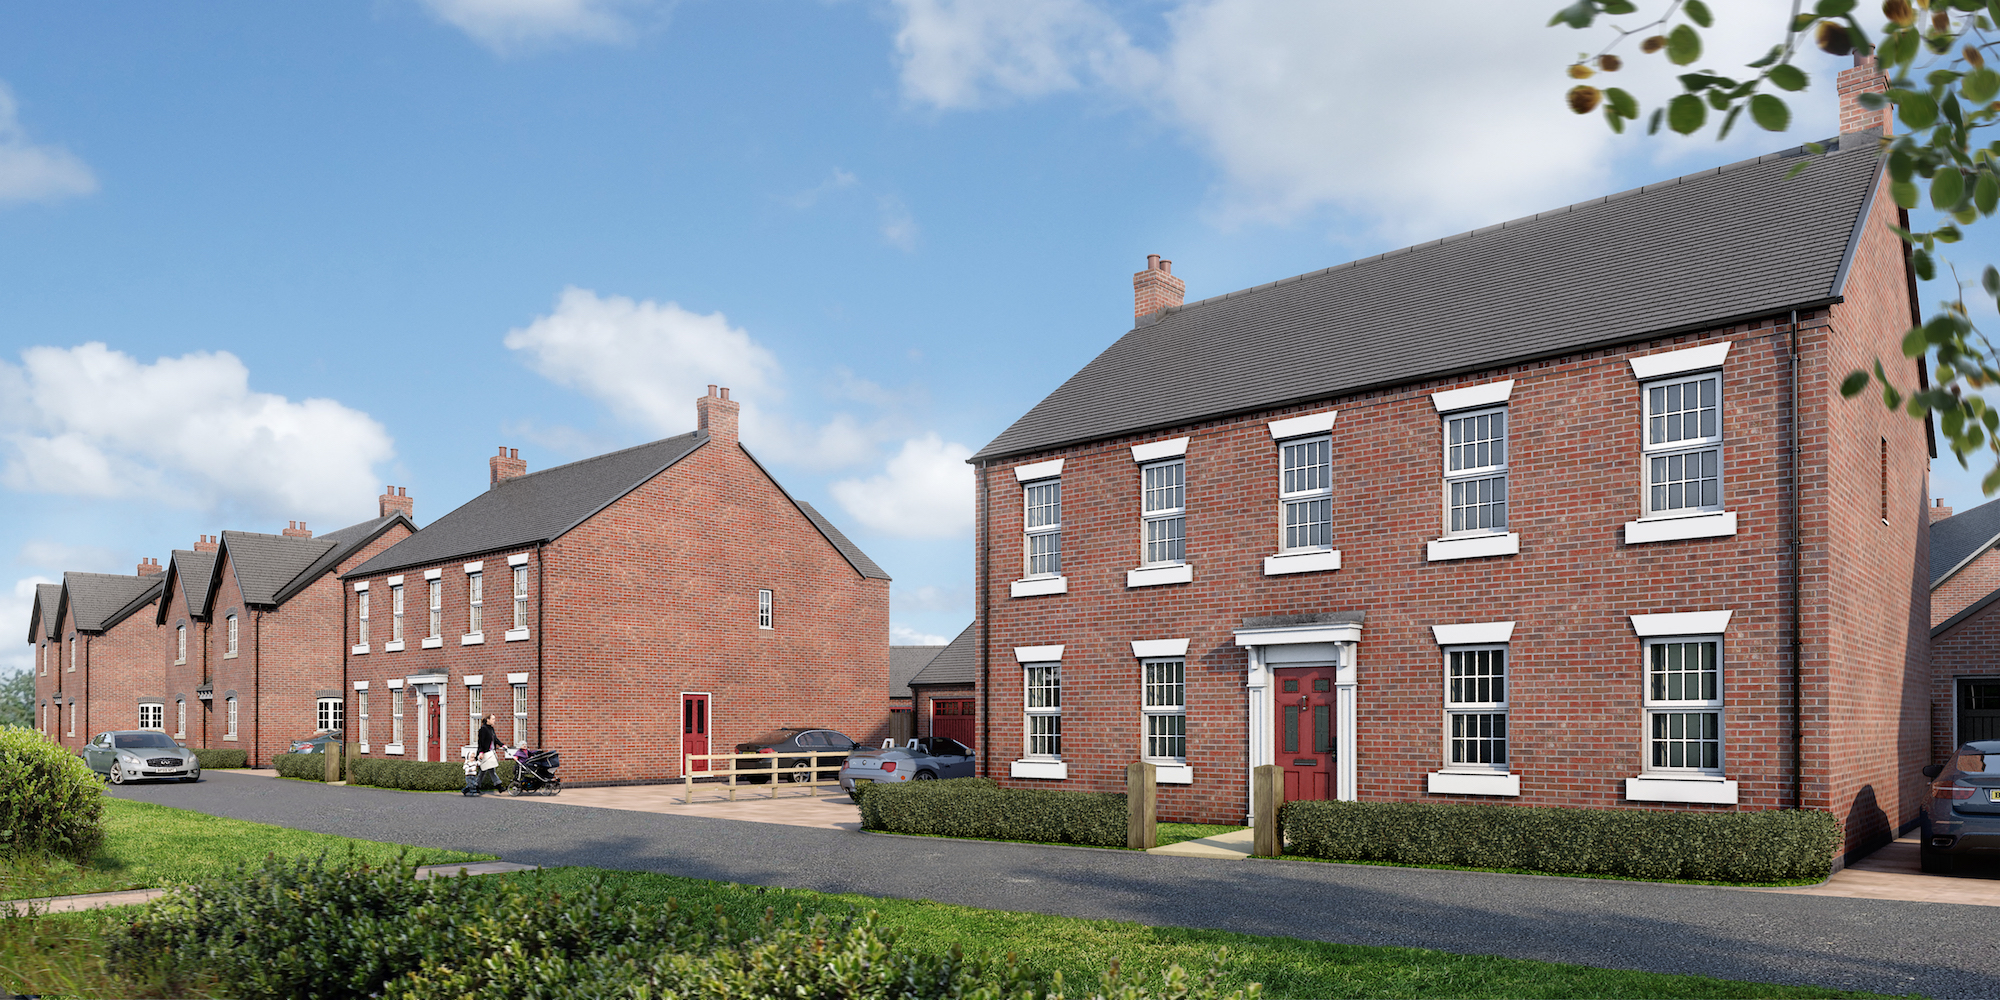 Planning submitted for new Peveril Homes development in Kirk Langley, Derbyshire